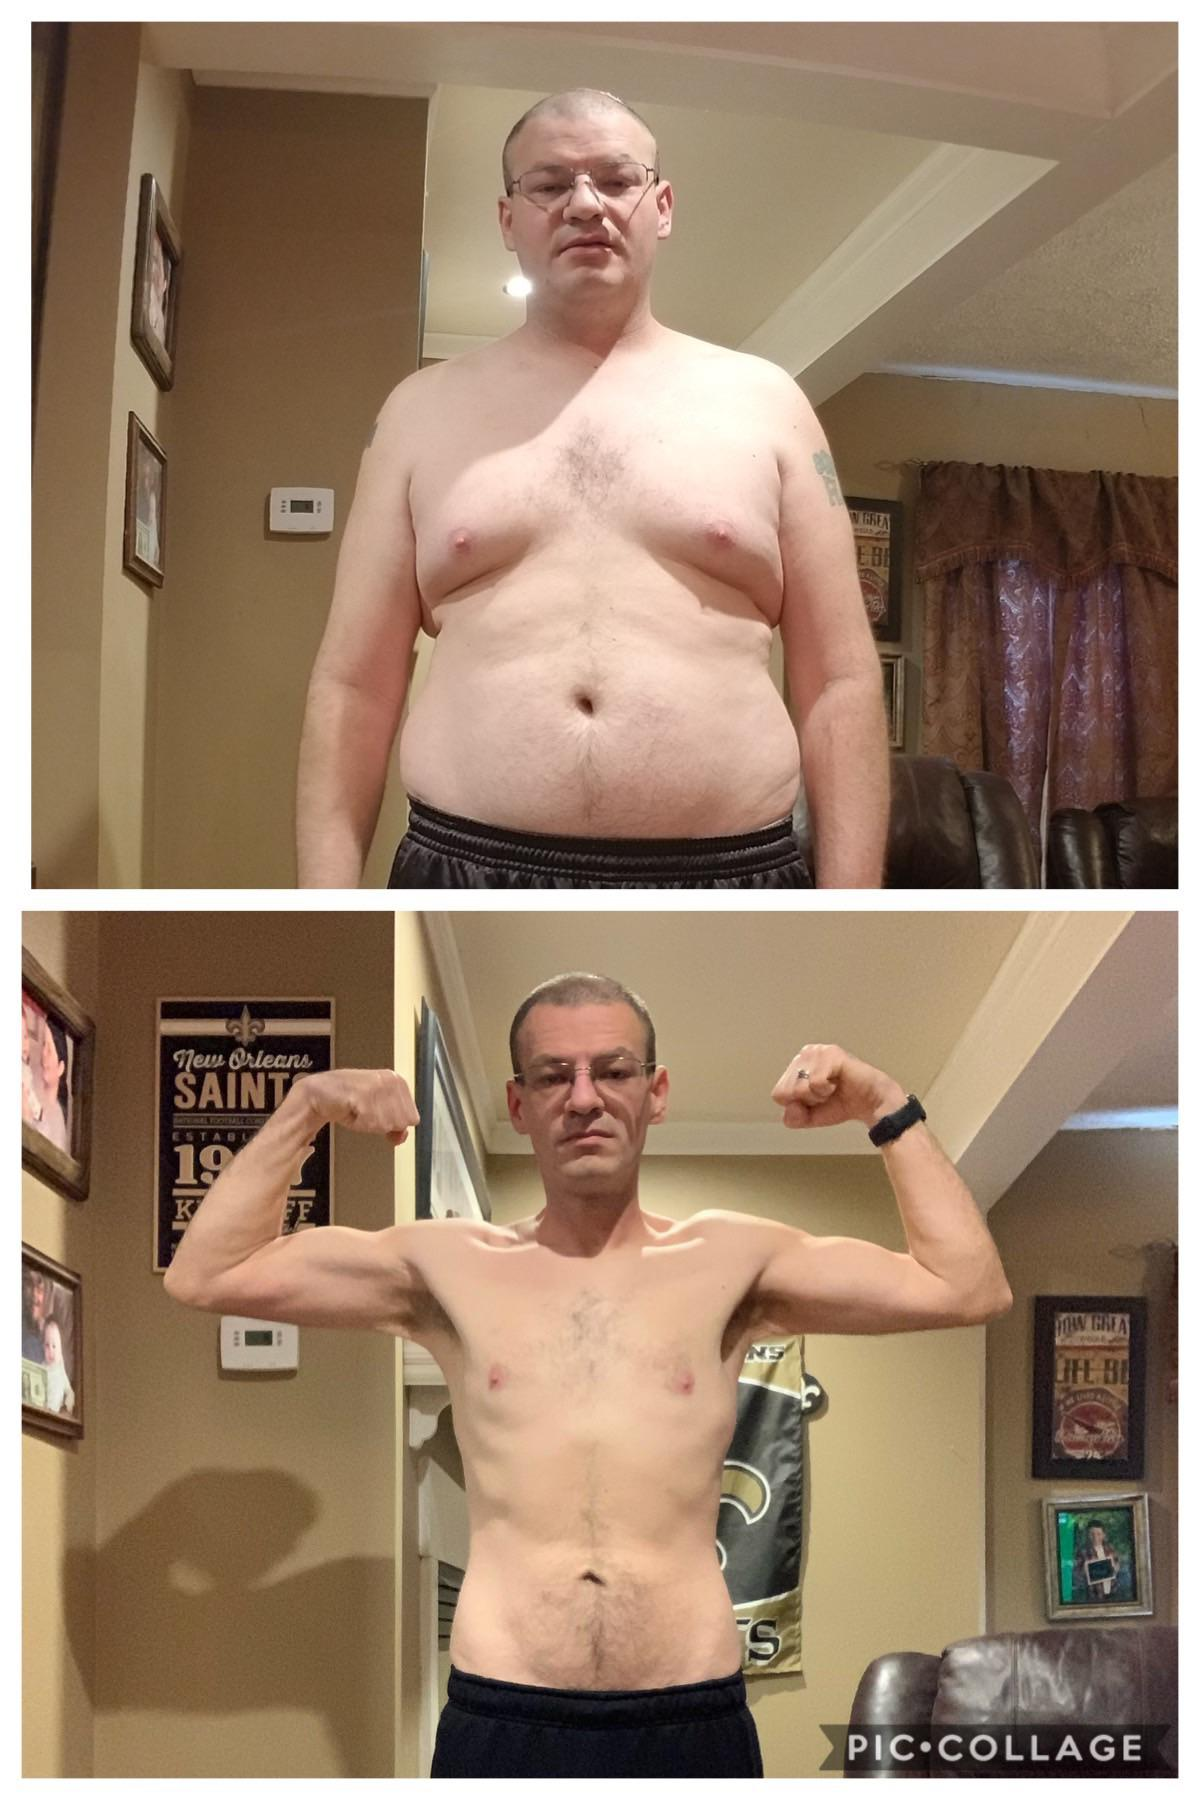 30 Day Omad Results : results, YeaR., Intermittentfasting